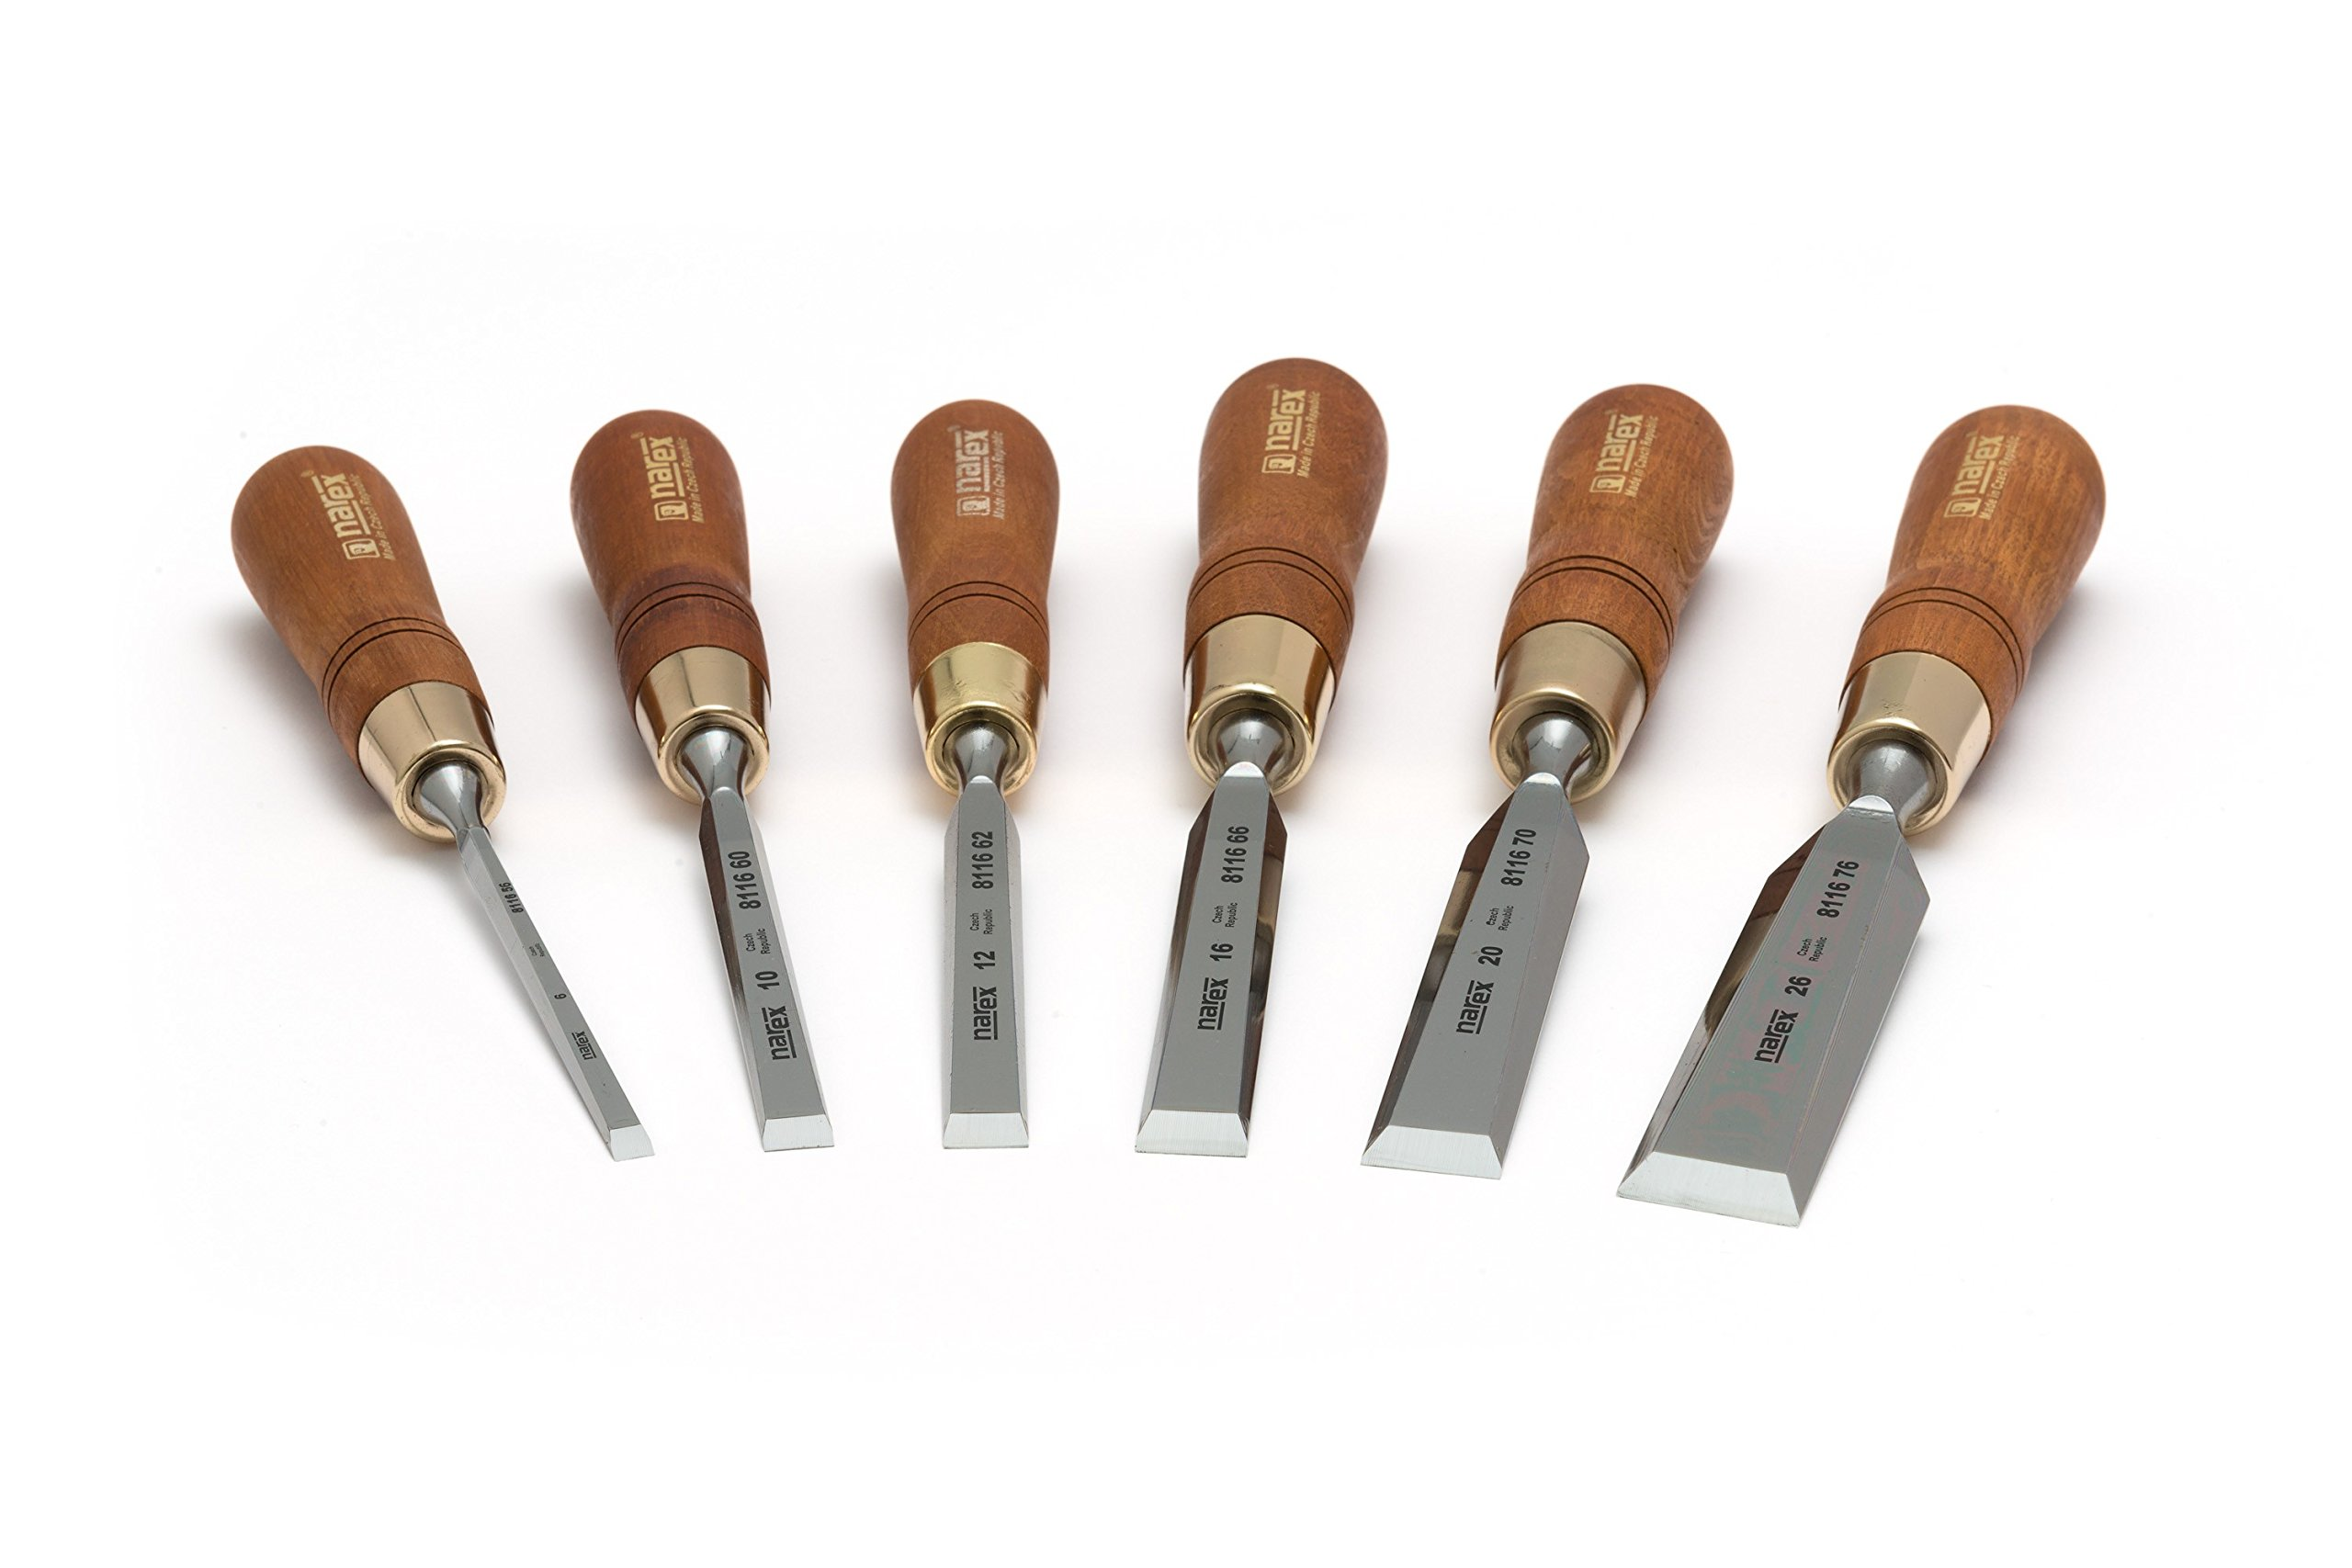 Set of Bevel Edge Chisels Premium - 6 Pieces